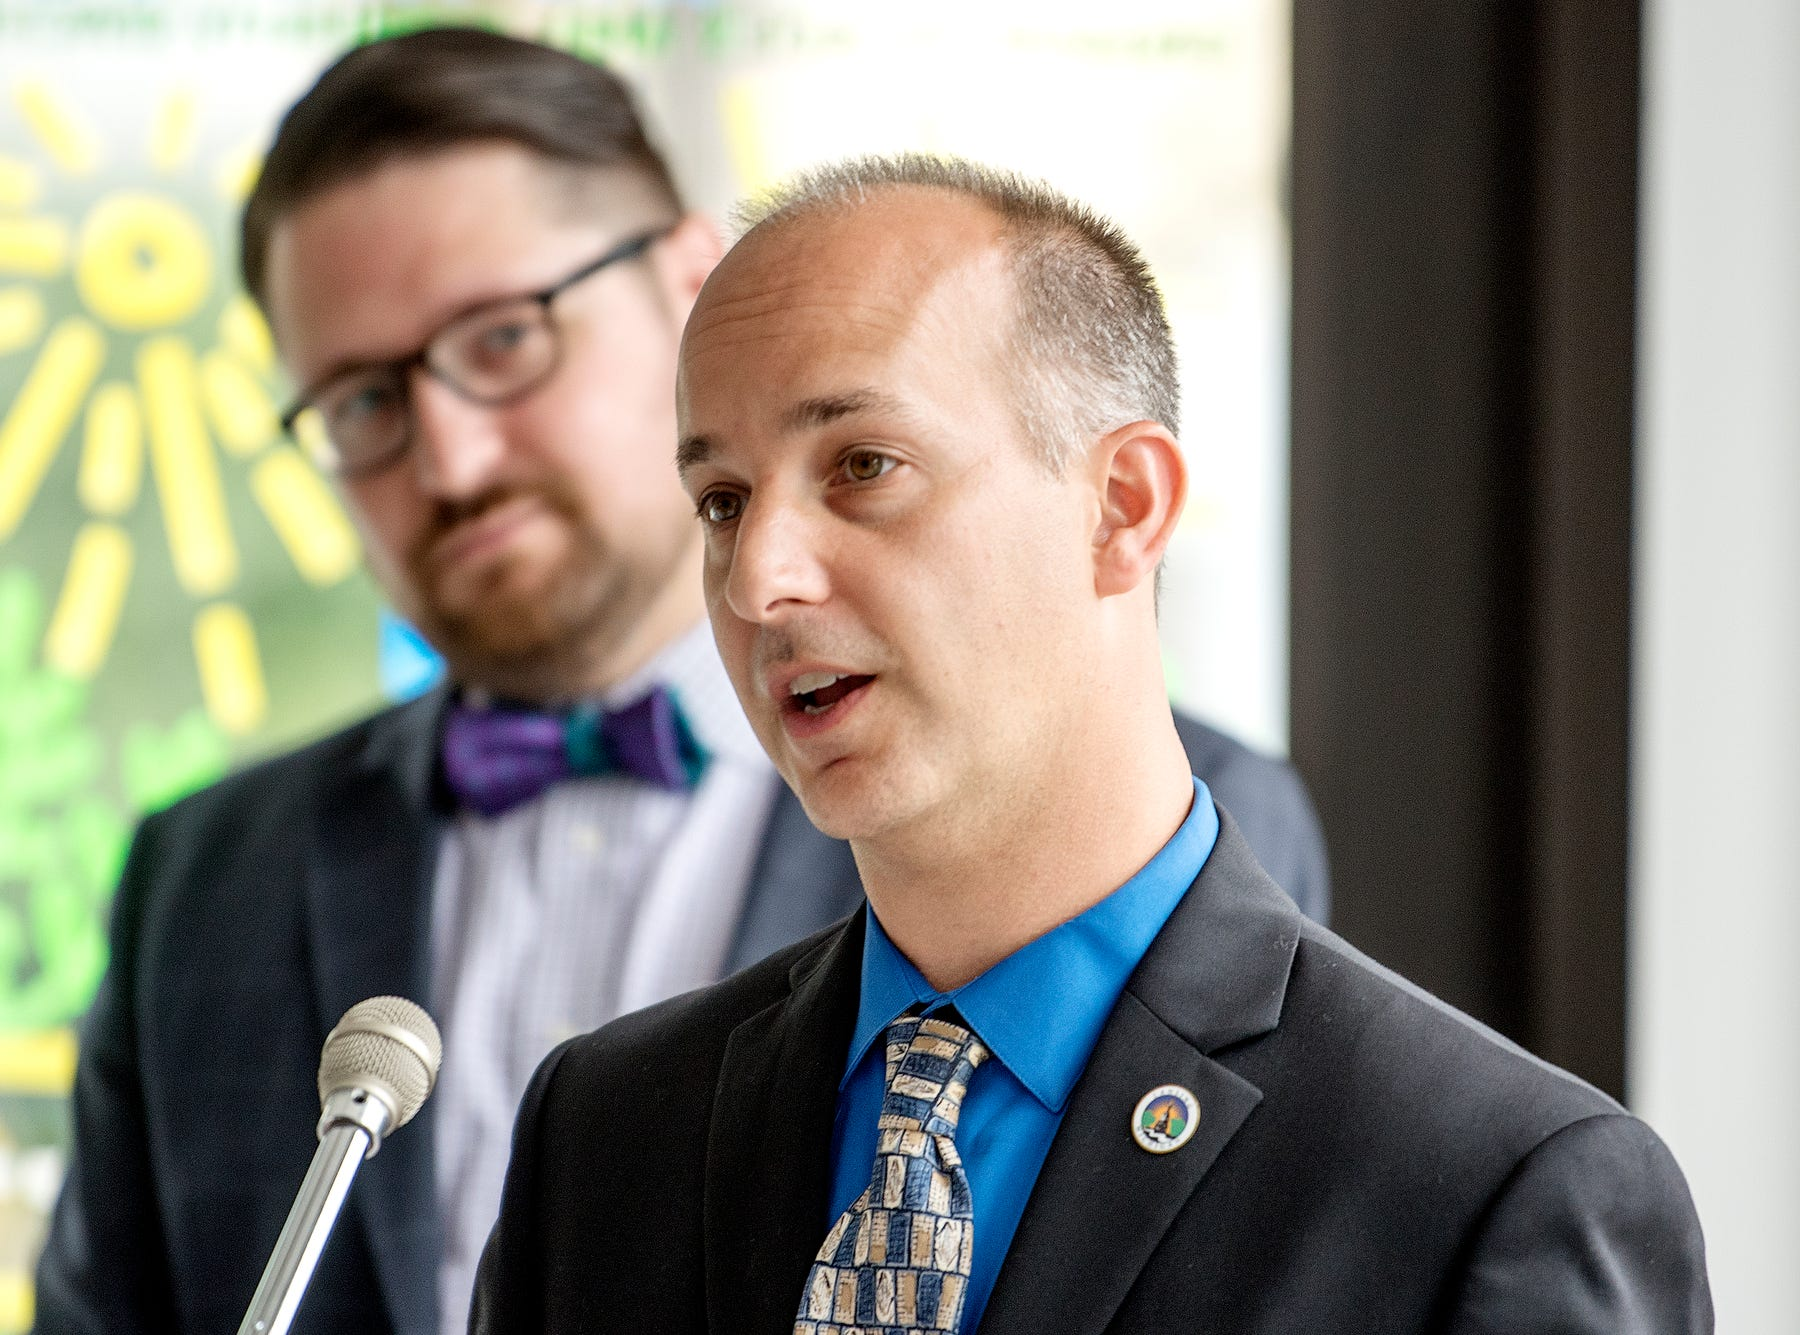 Mayor Andy Schor, right, speaks during a press conference kicking off 'Imagine the Avenue' on Monday, Aug. 6, 2018, at The Venue on Michigan Avenue in Lansing. CATA chairperson Nathan Triplett, left, looks on.